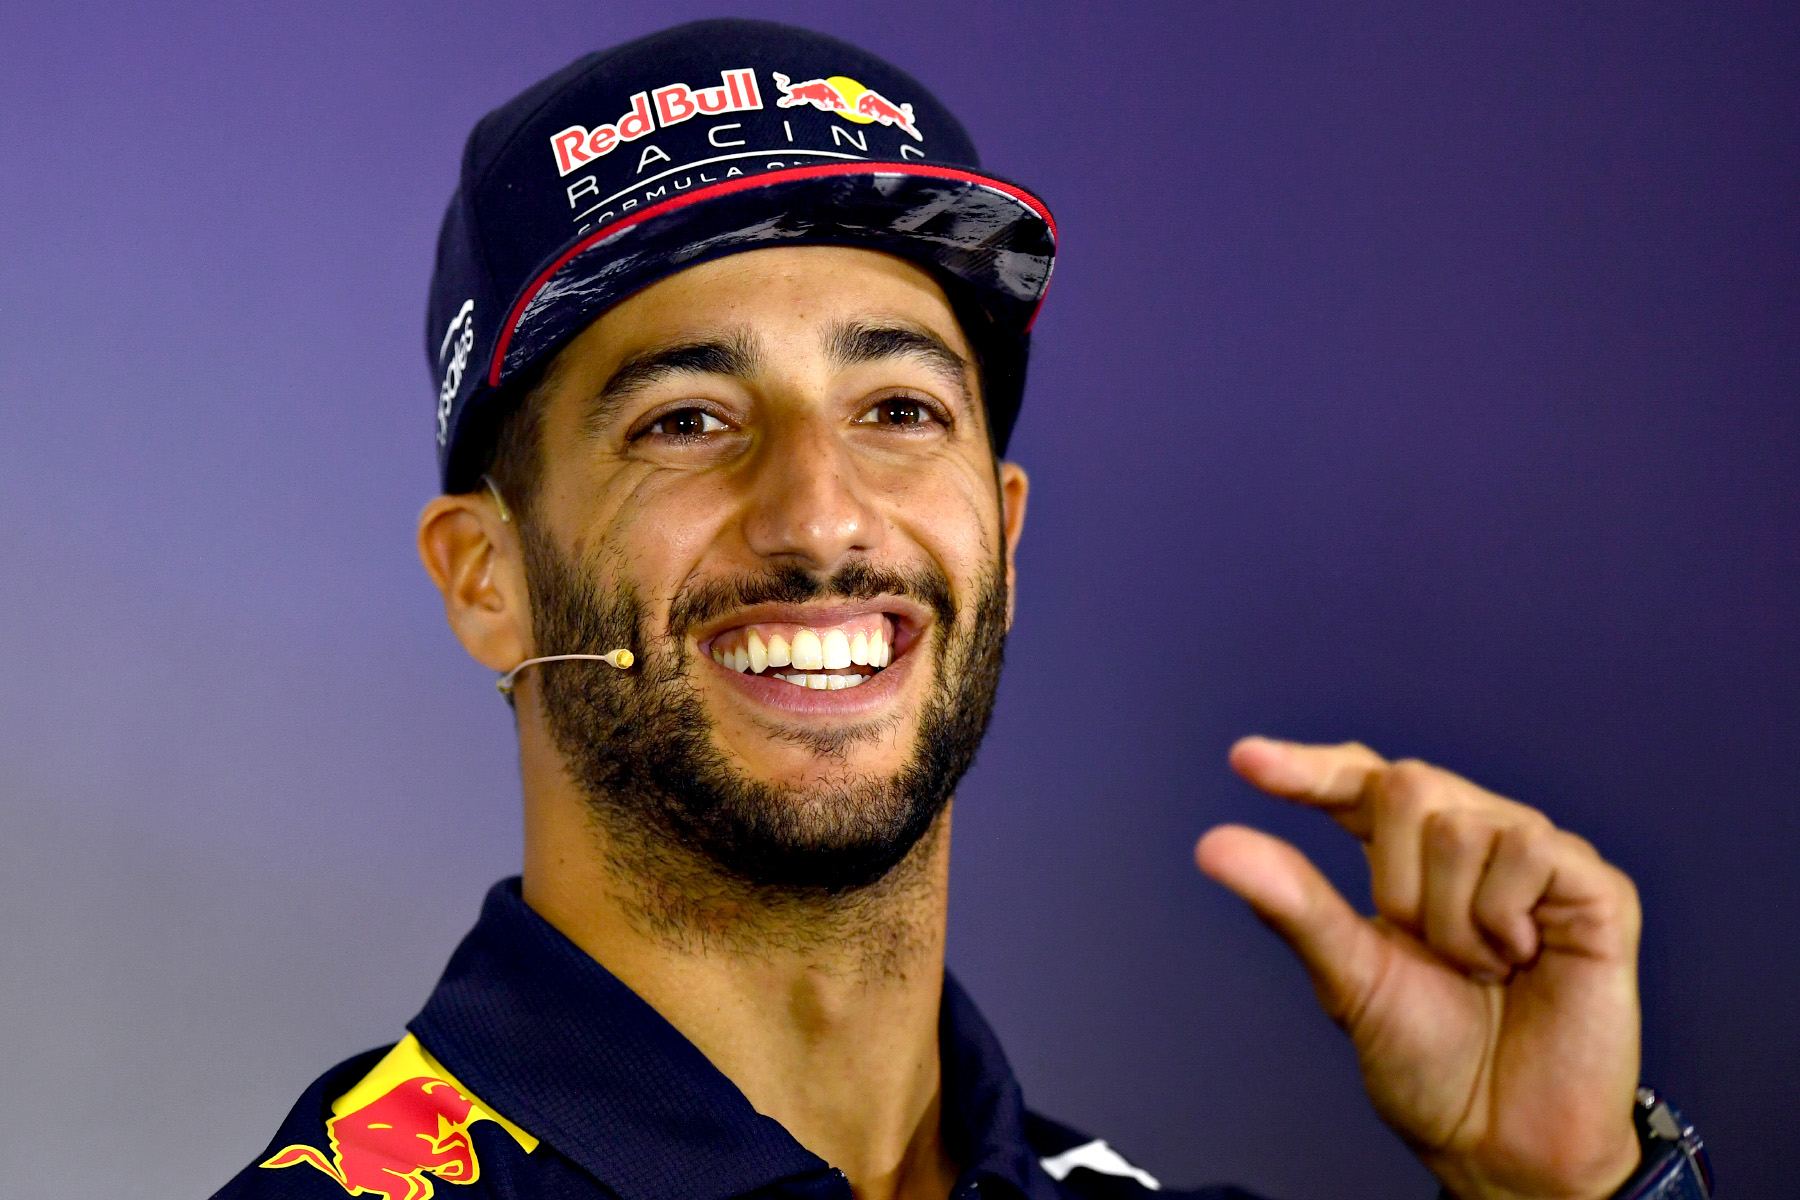 Daniel Ricciardo at the 2017 British Grand Prix.